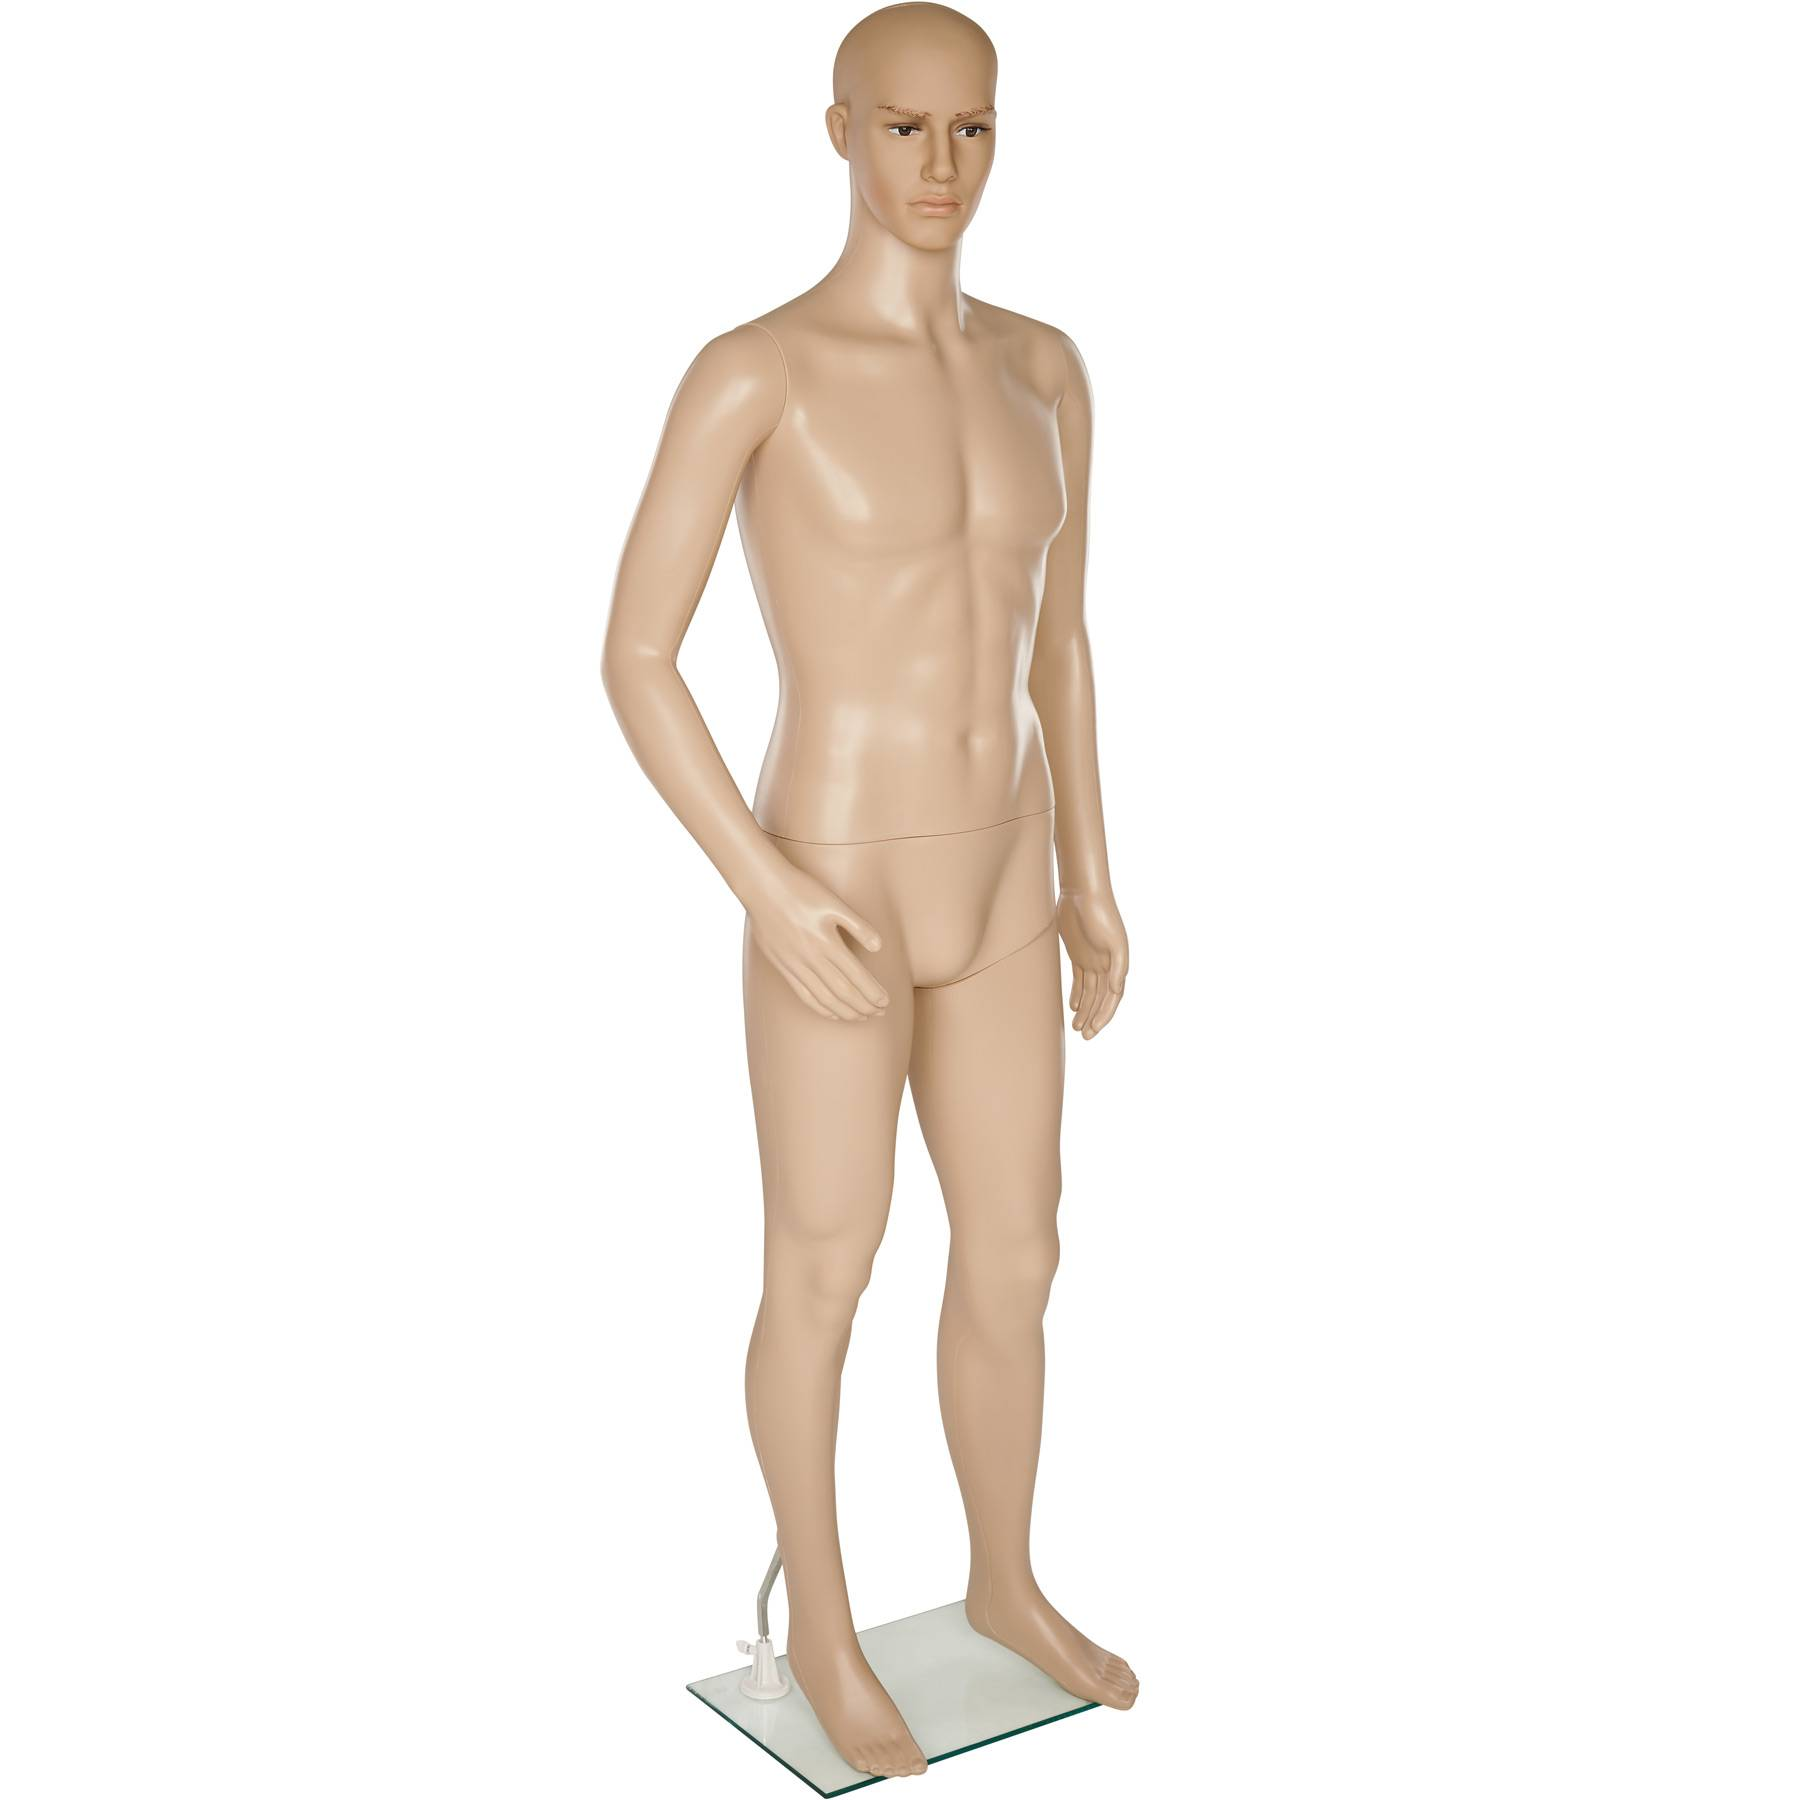 tectake Mannequin - male